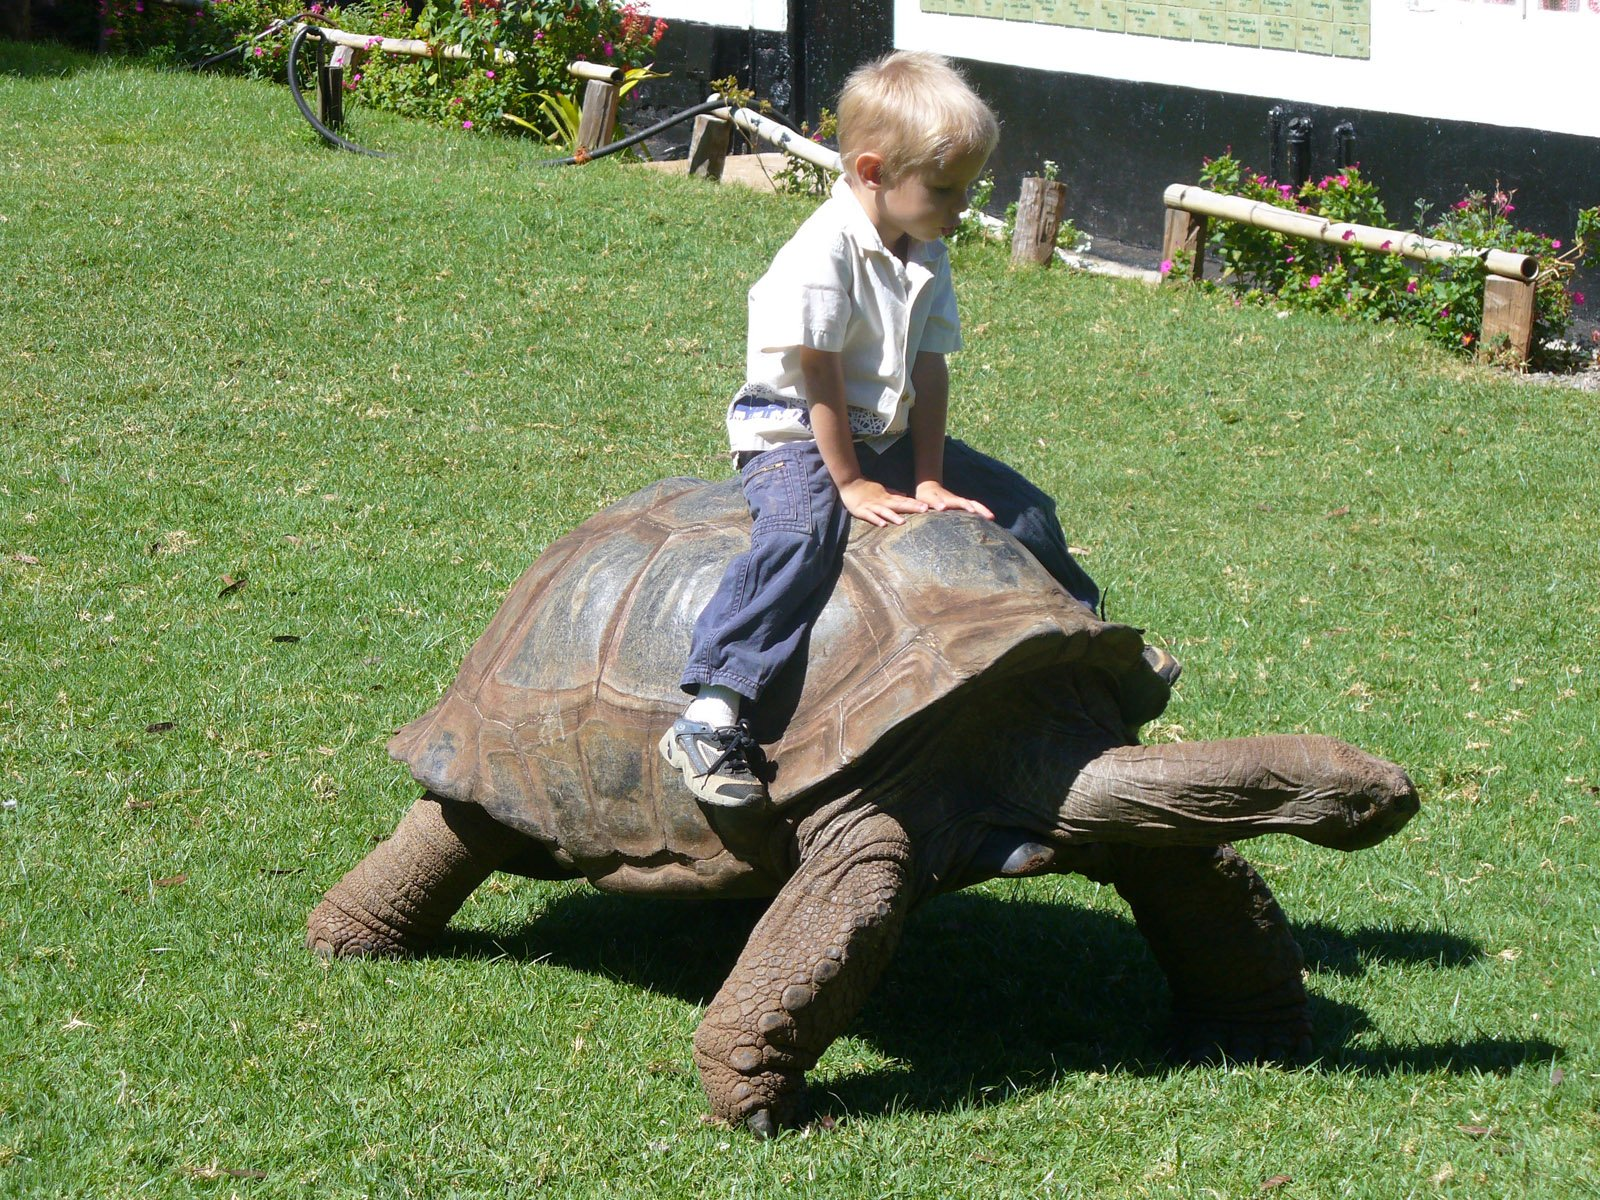 How do I Take Care of my New Pet Tortoise?